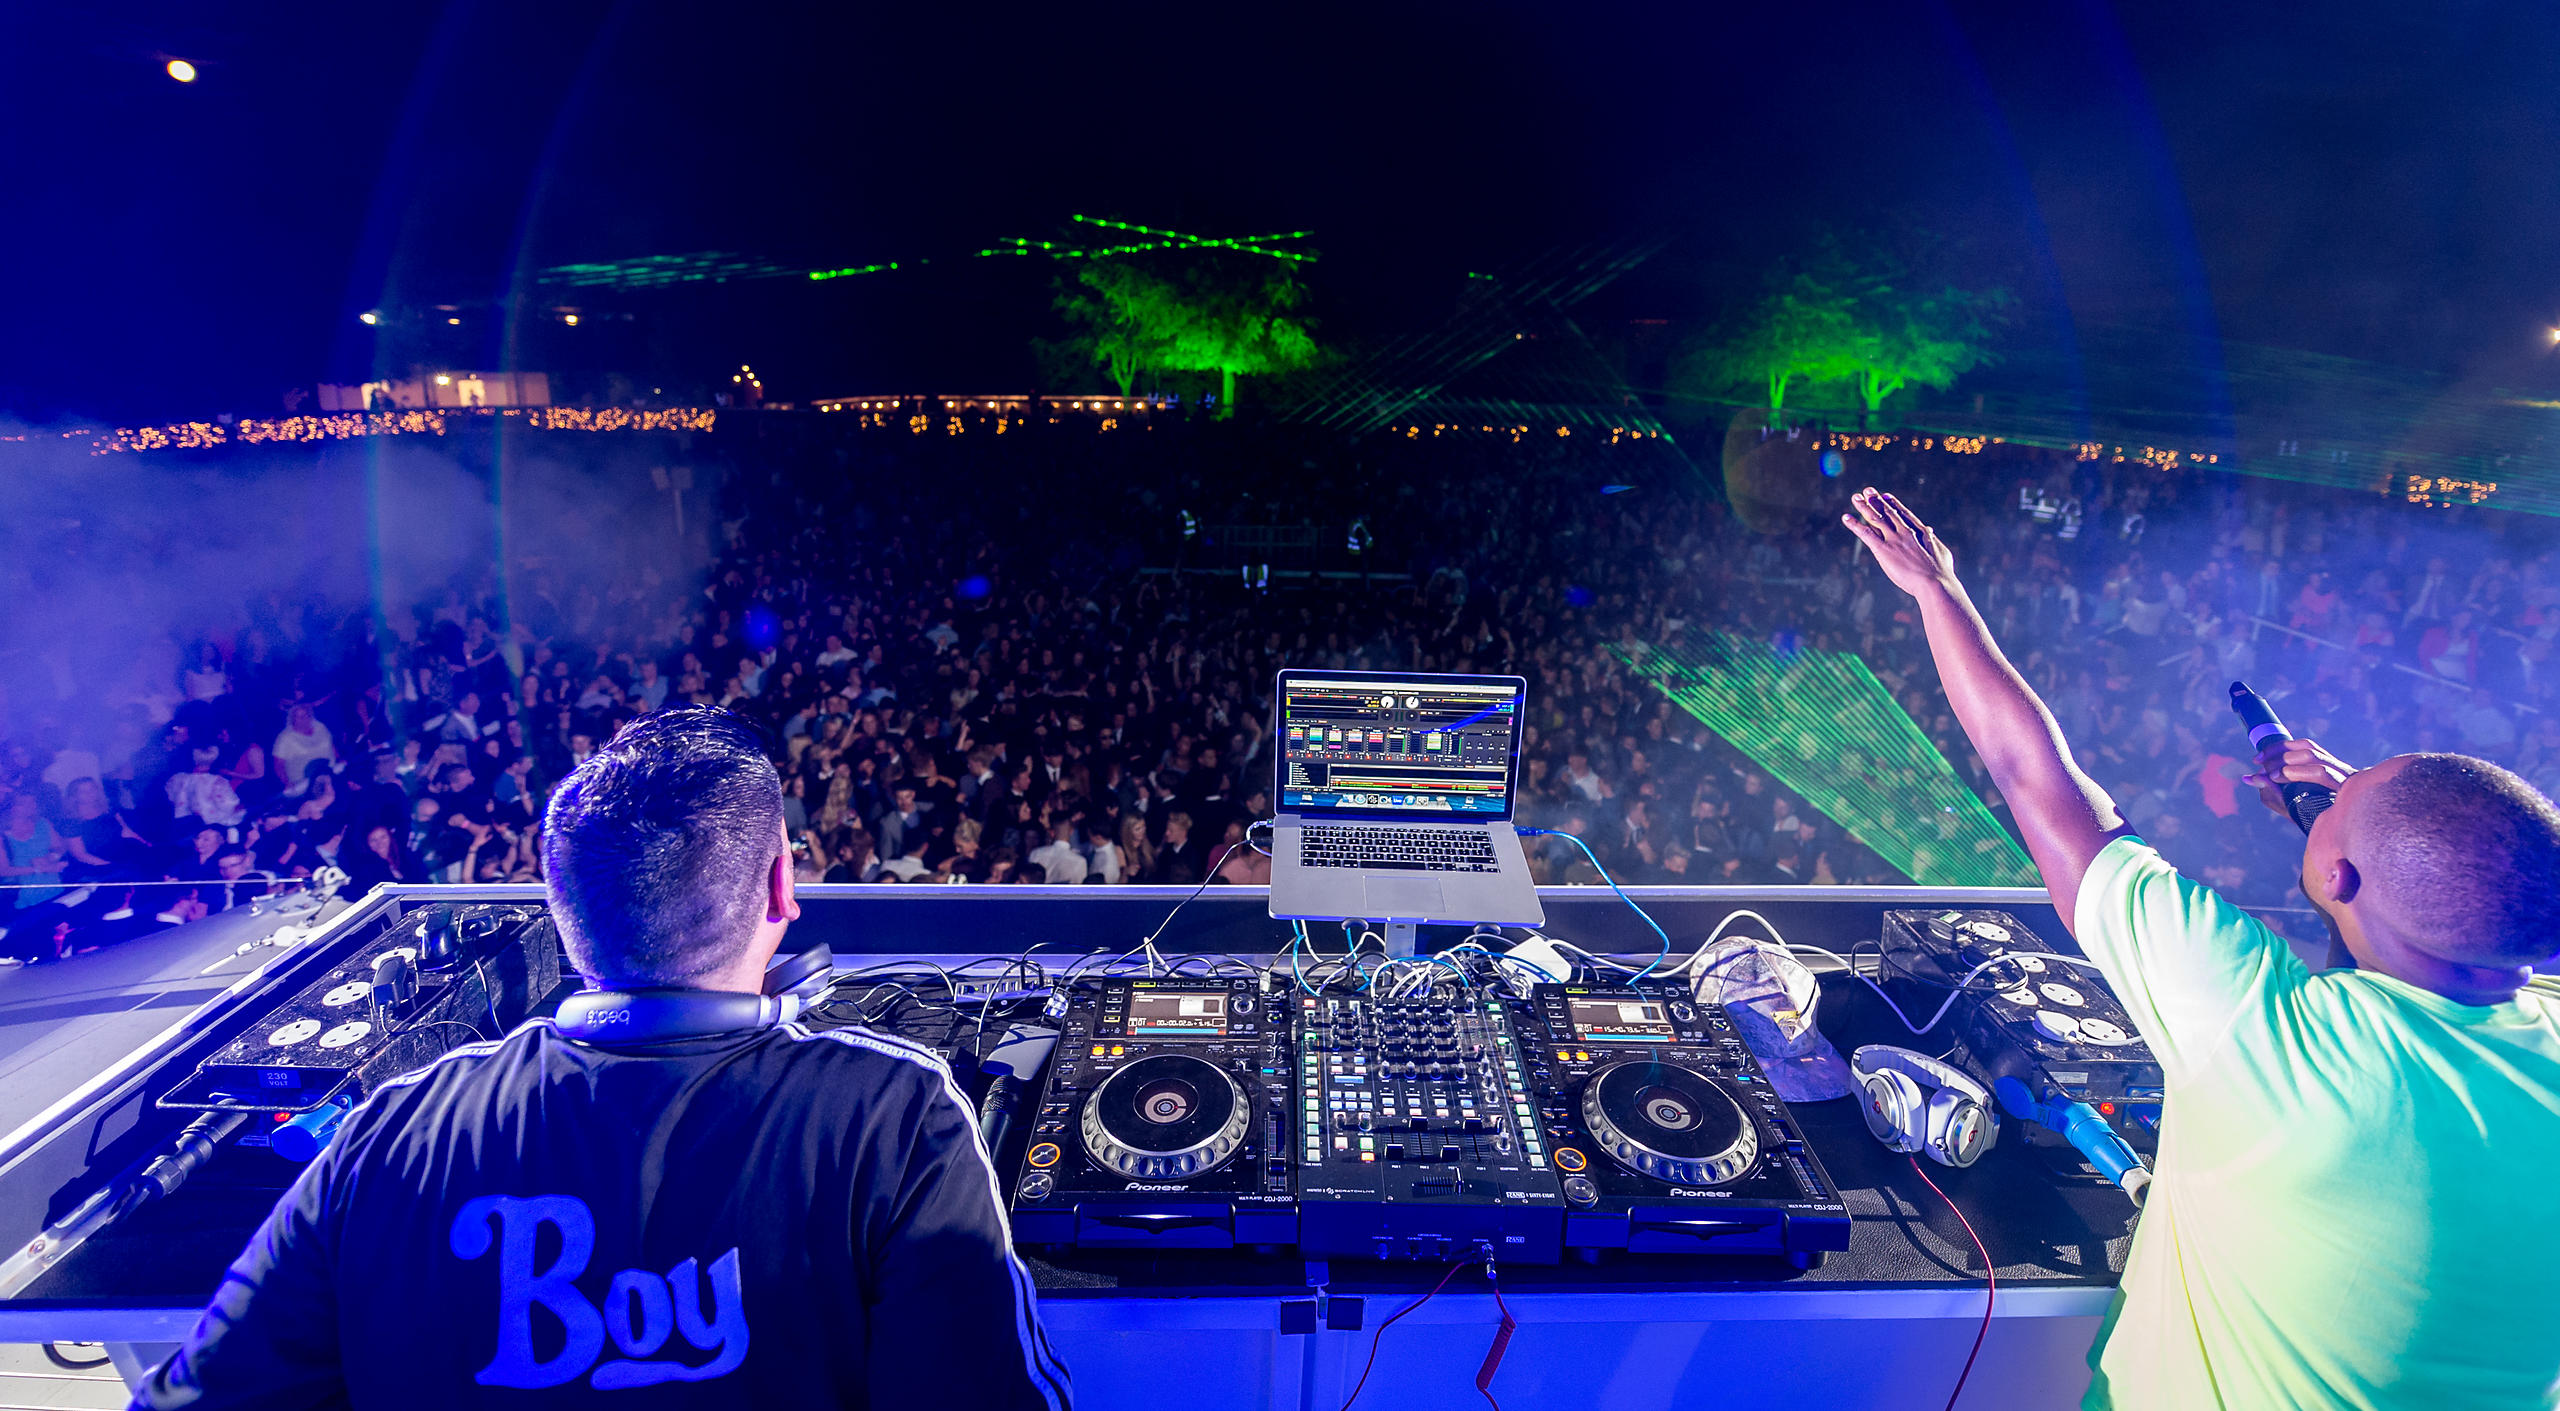 Naughty Boy & DJ King at Goodwood Three Friday Nights 2014